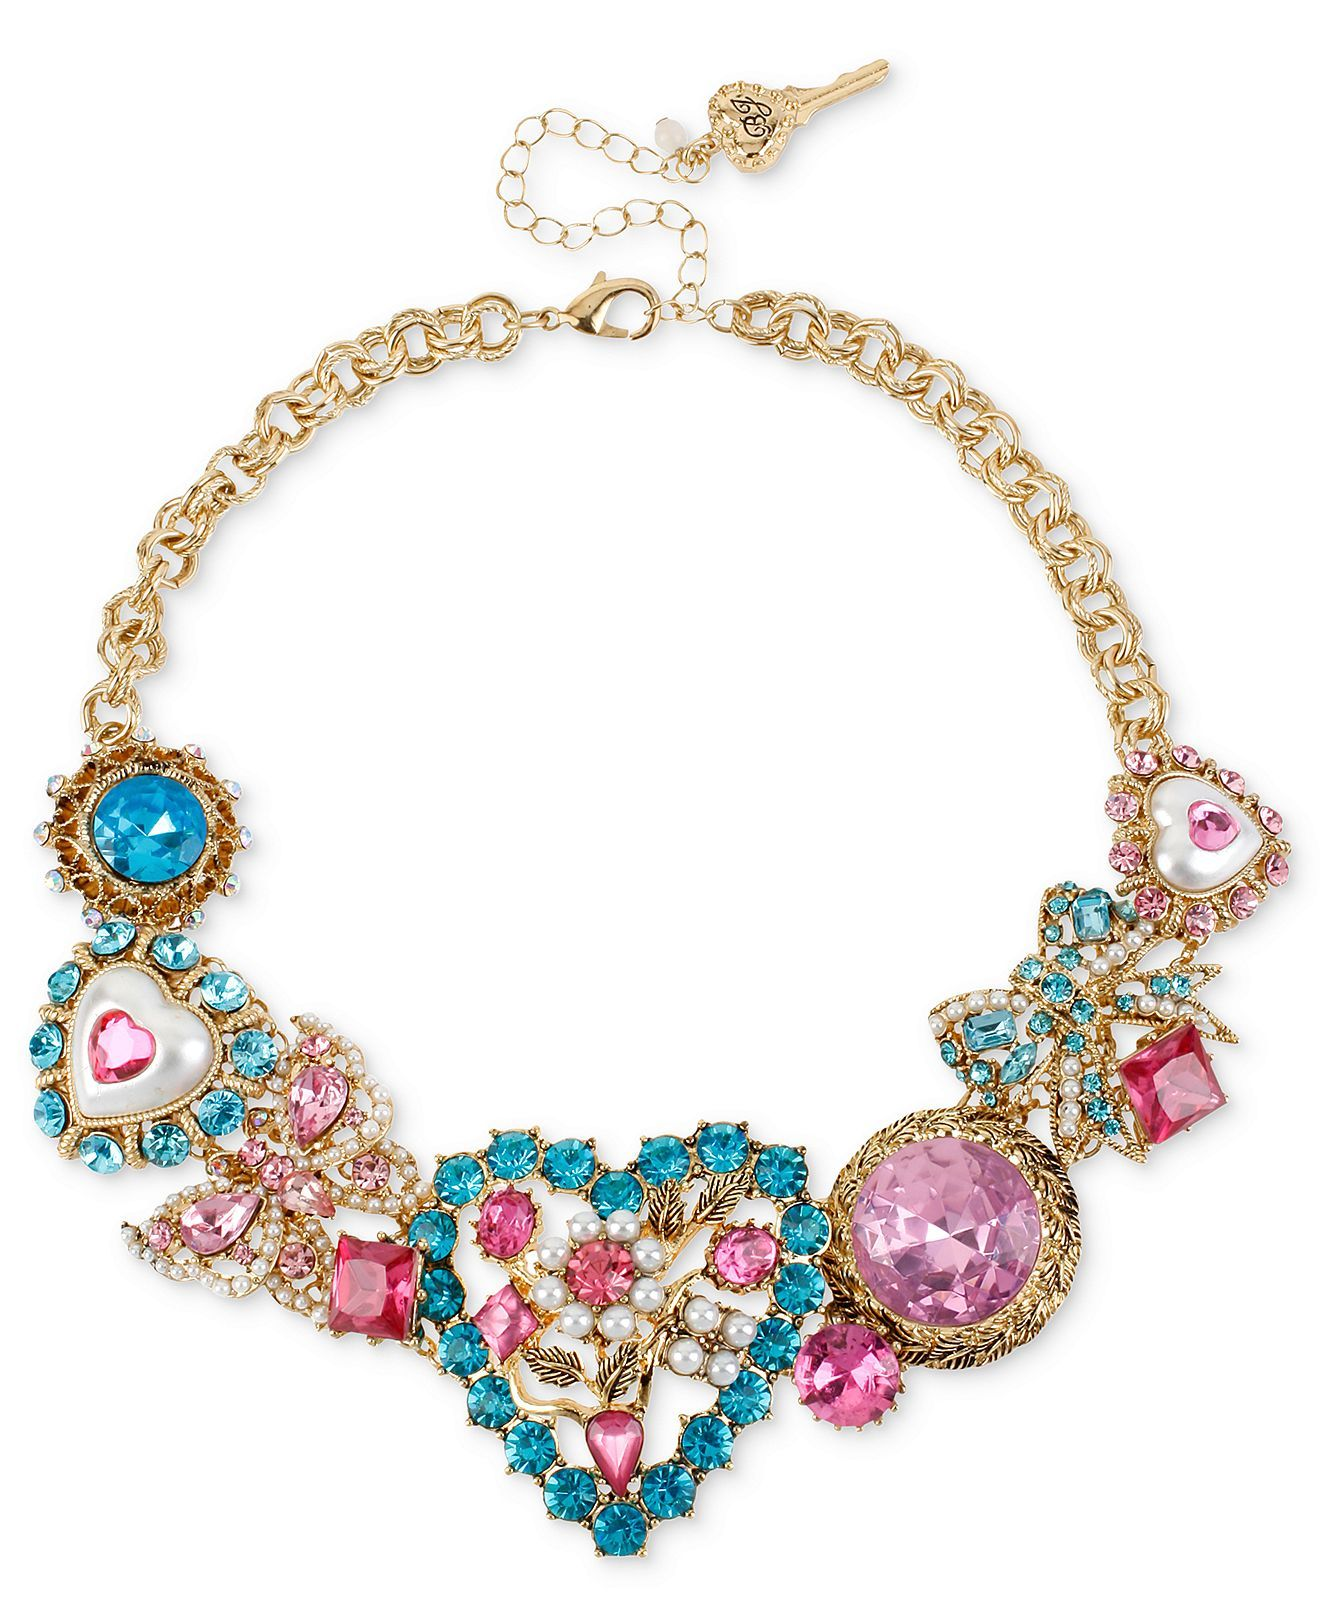 Betsey Johnson Necklace, Gold-Tone Heart Stone Frontal Necklace - Fashion Jewelry - Jewelry & Watches - Macy's